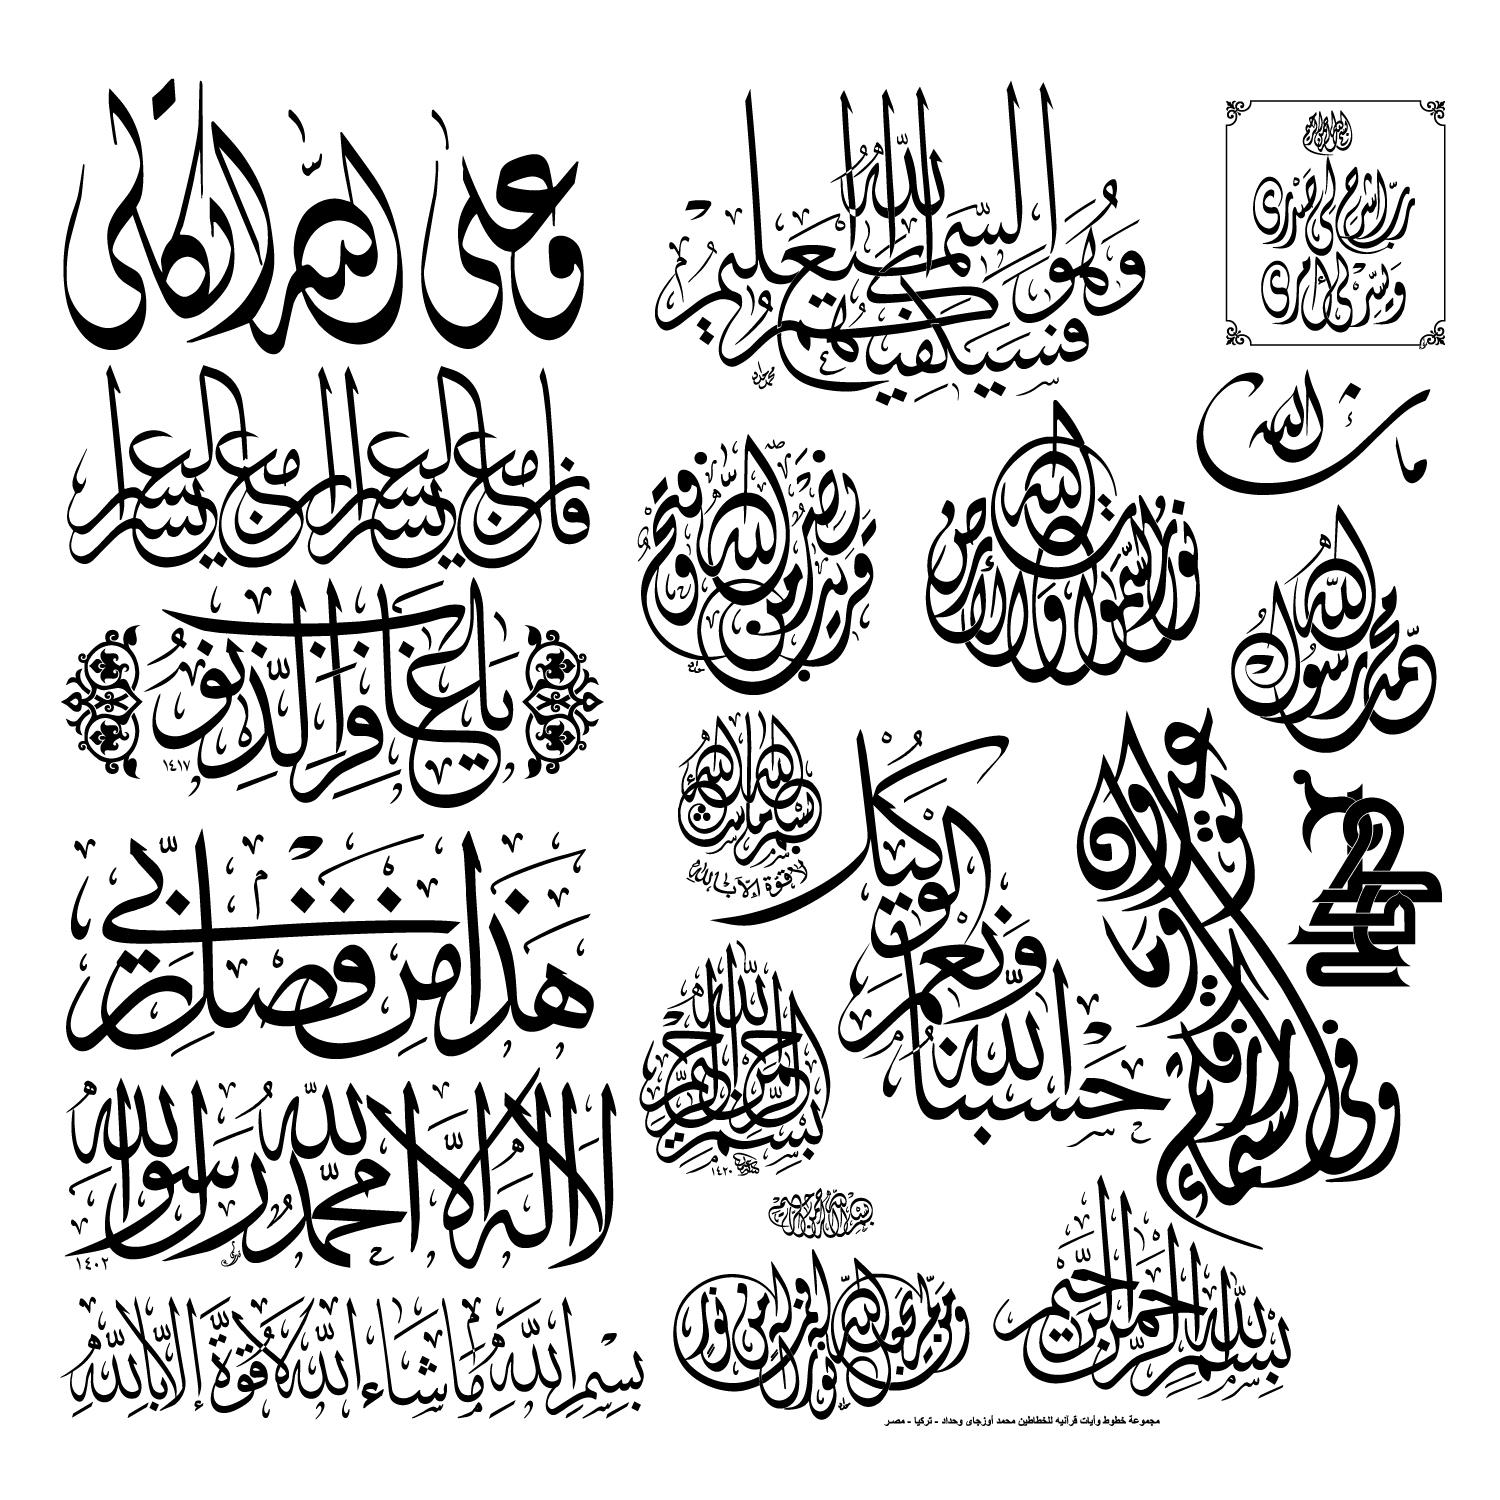 Islamic calligraphy by naderbellal on deviantart